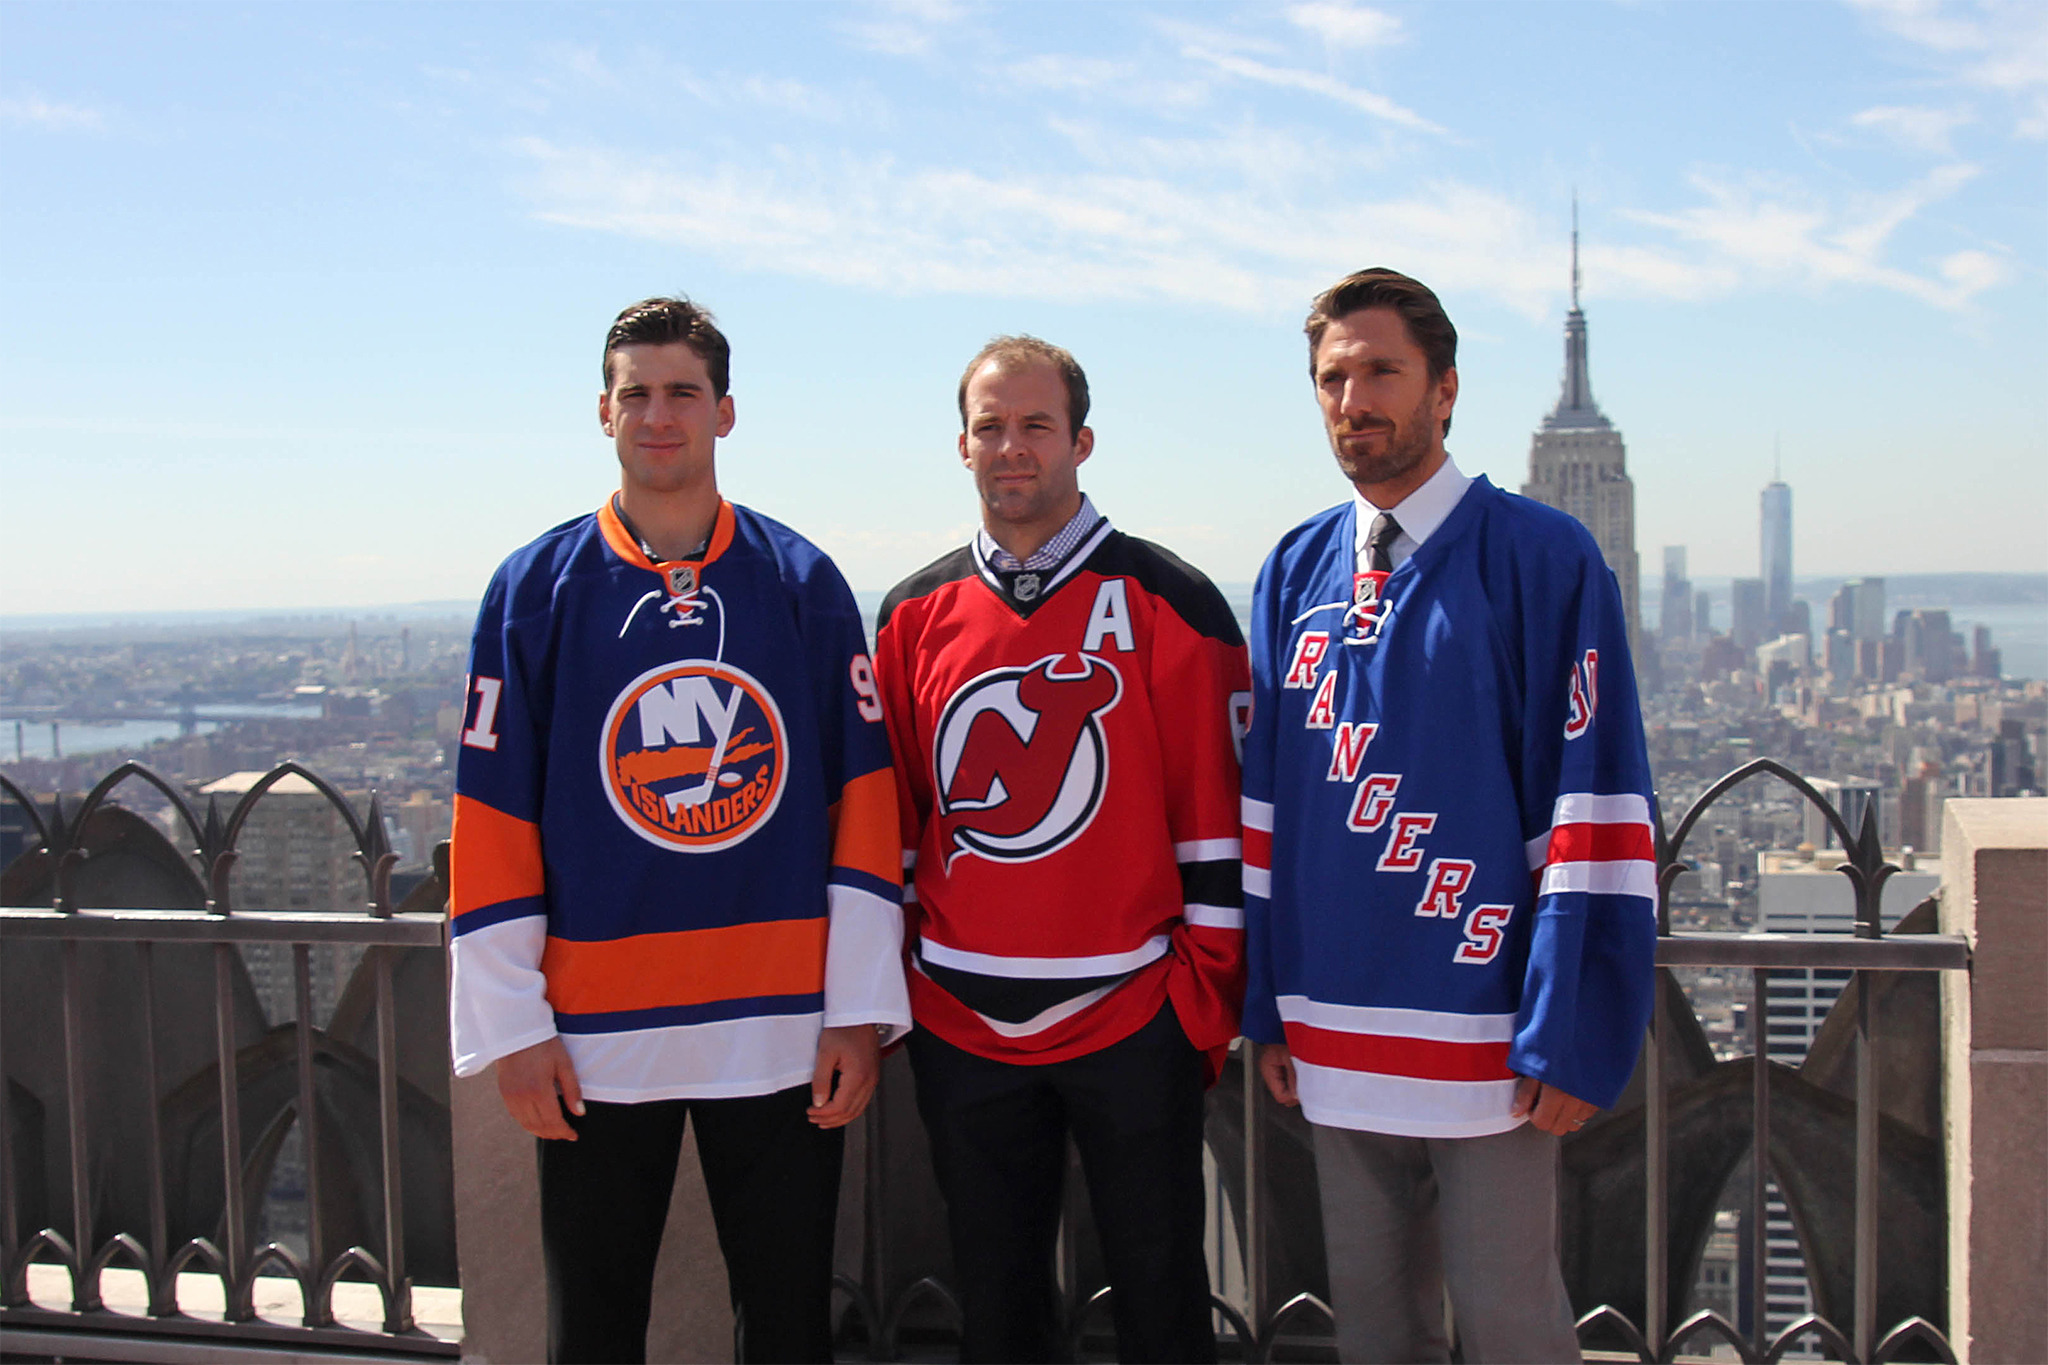 New Jersey Devils vs. New York Islanders